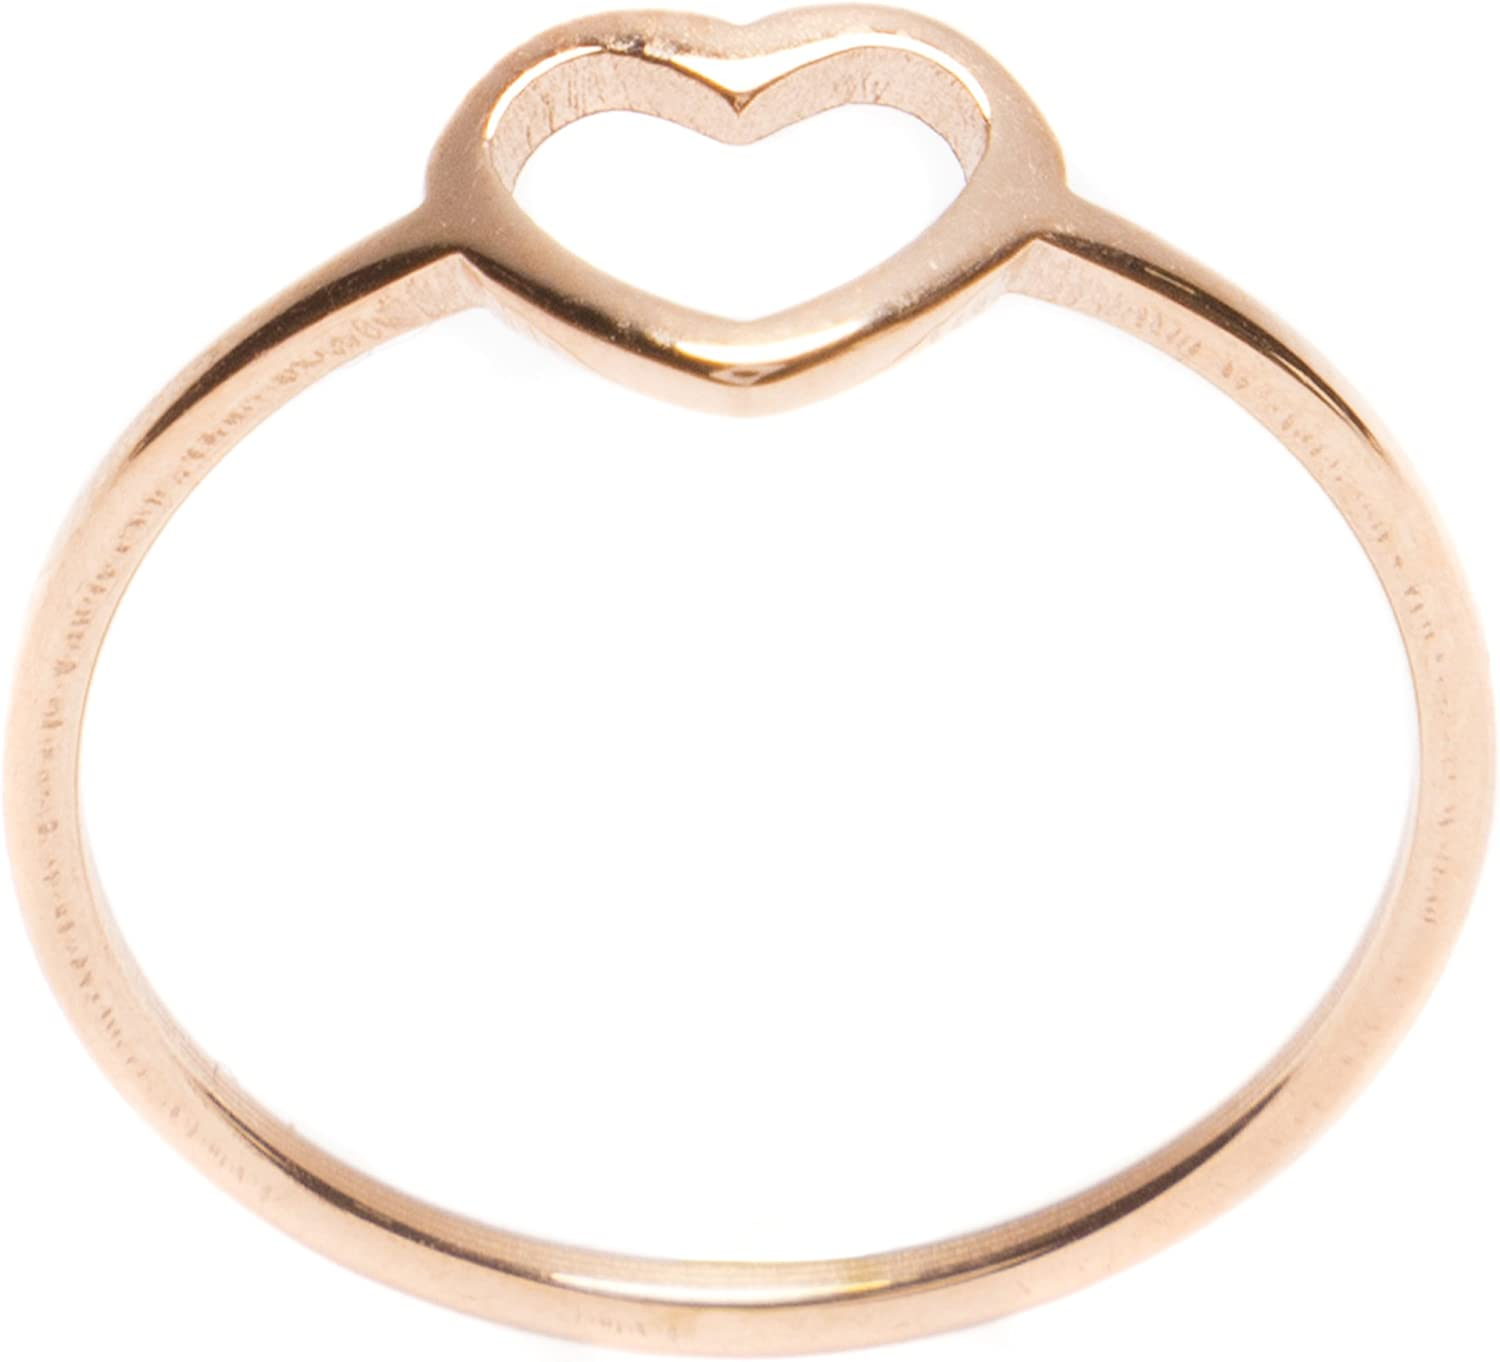 Stainless Steel Gold Color Plated Open Love Heart Link Fancy Ring